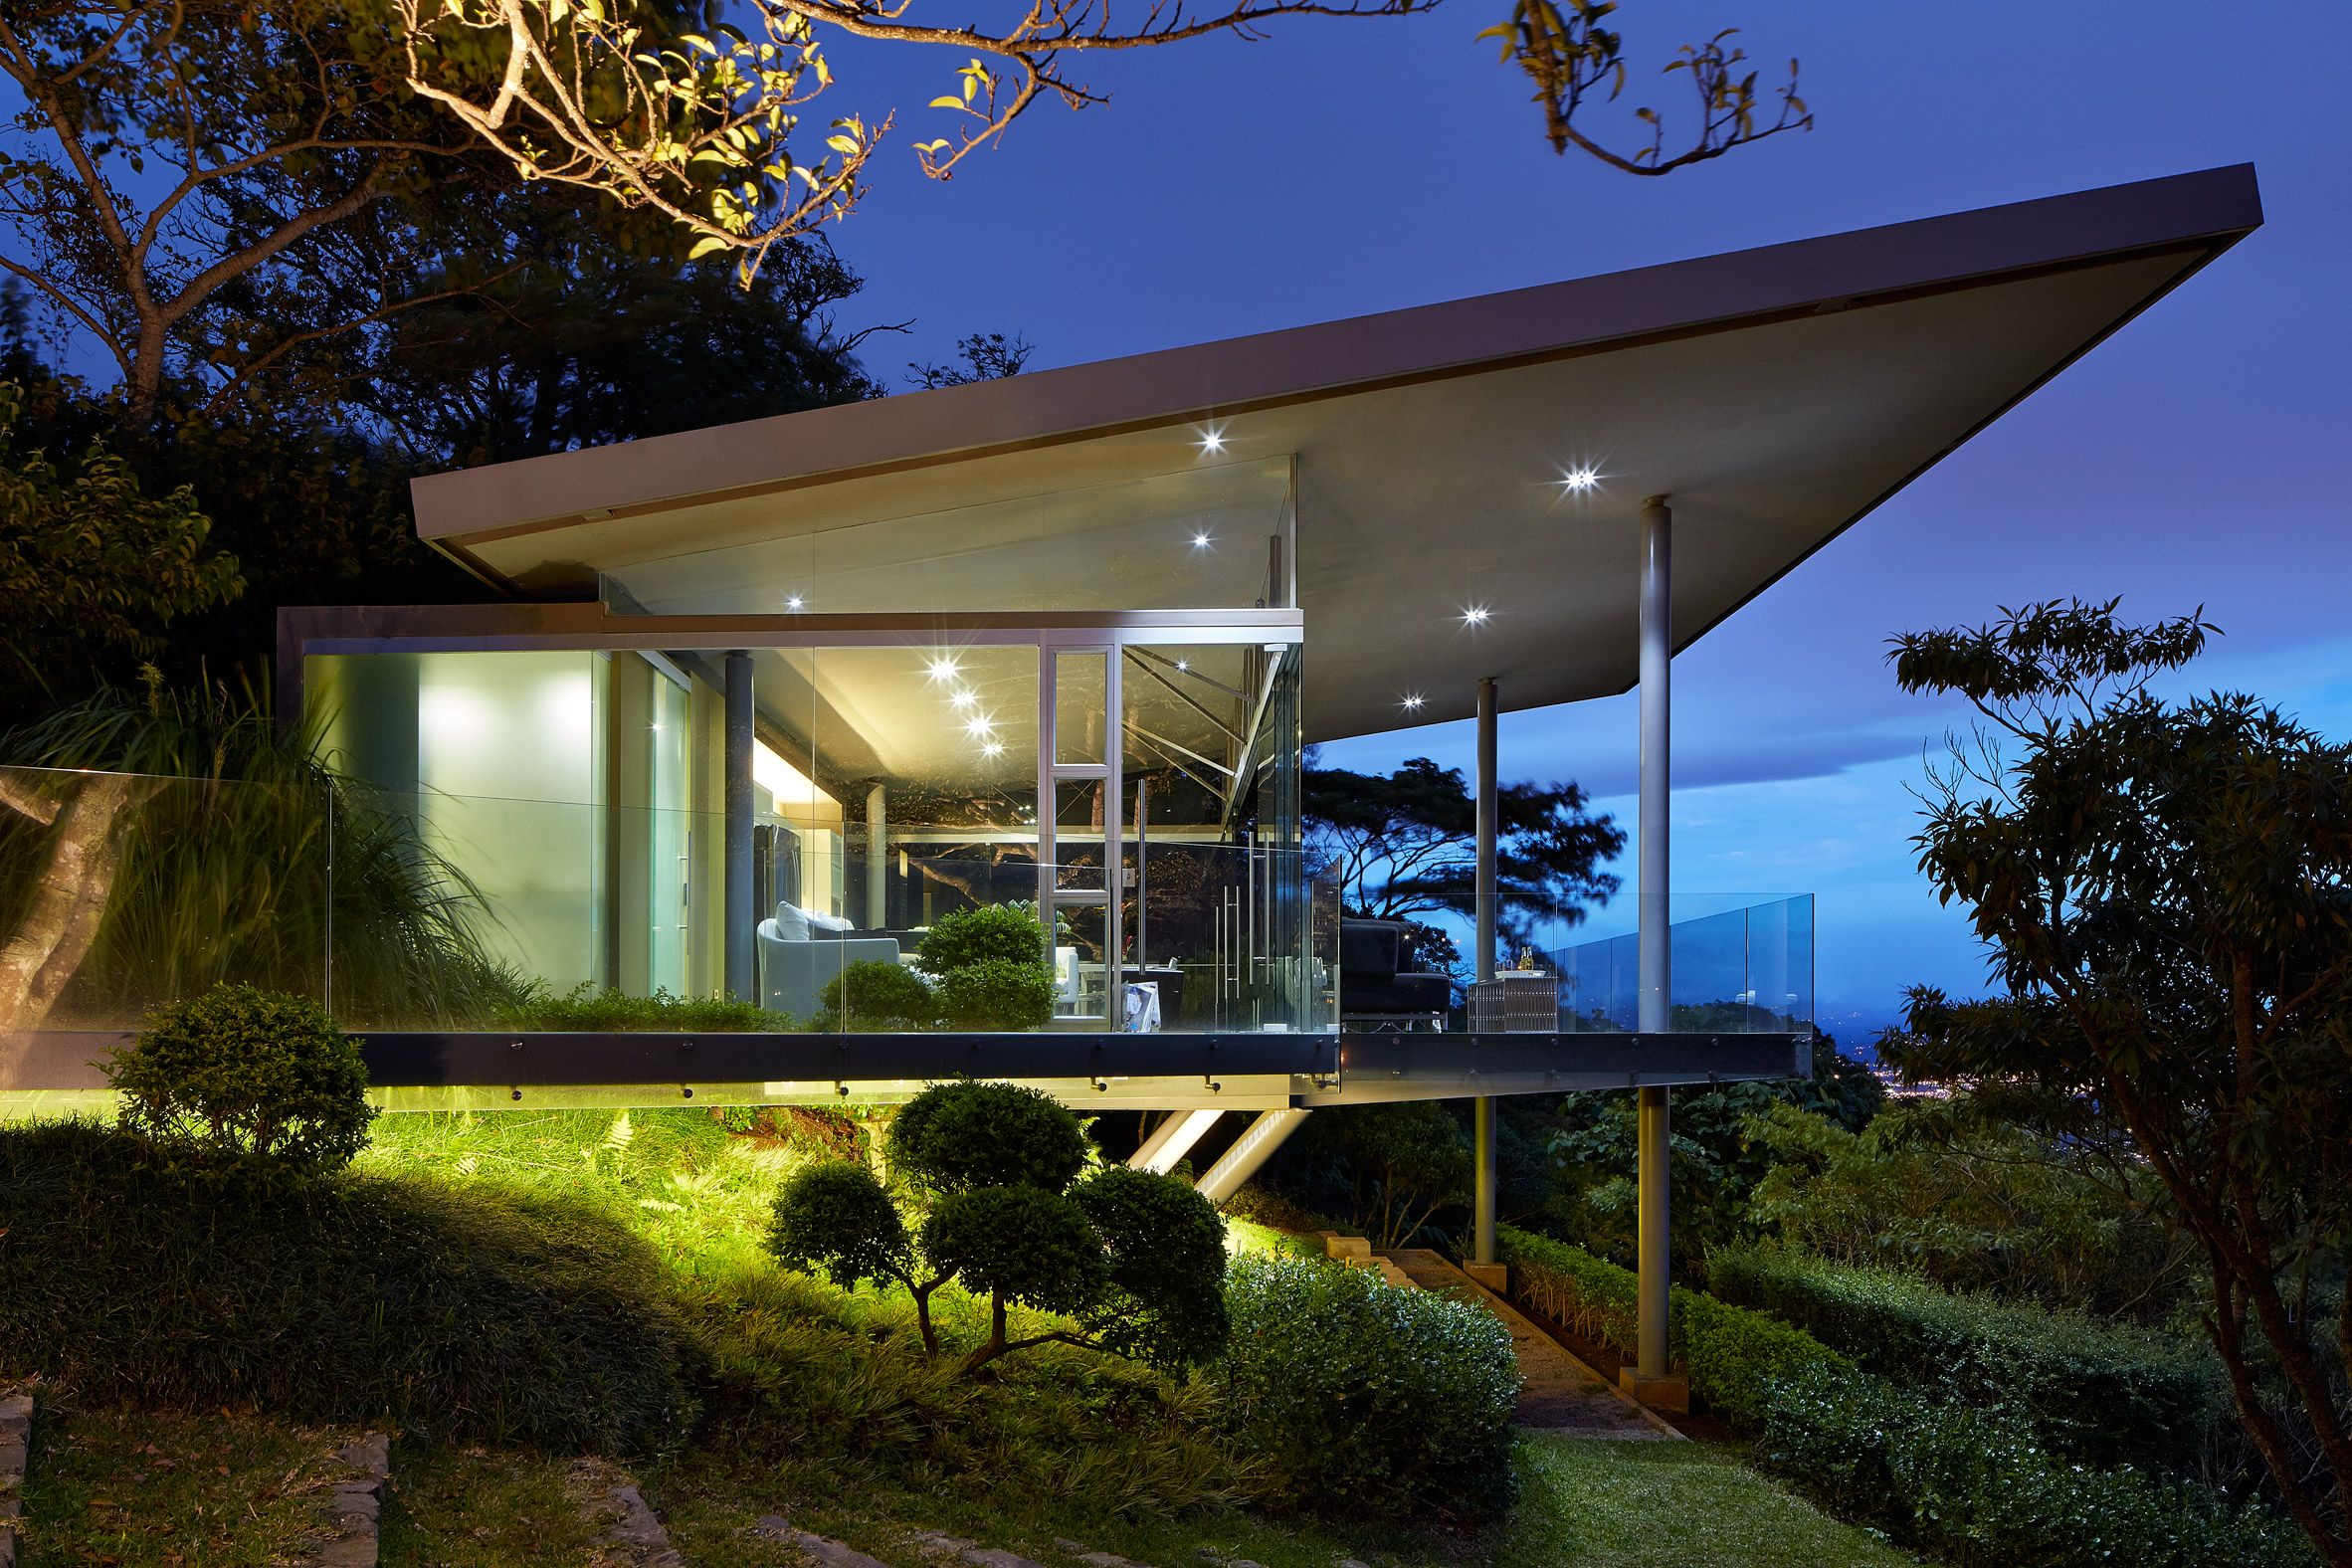 Estancia Y Ficus By Canas Arquitectos Architecture Glass House